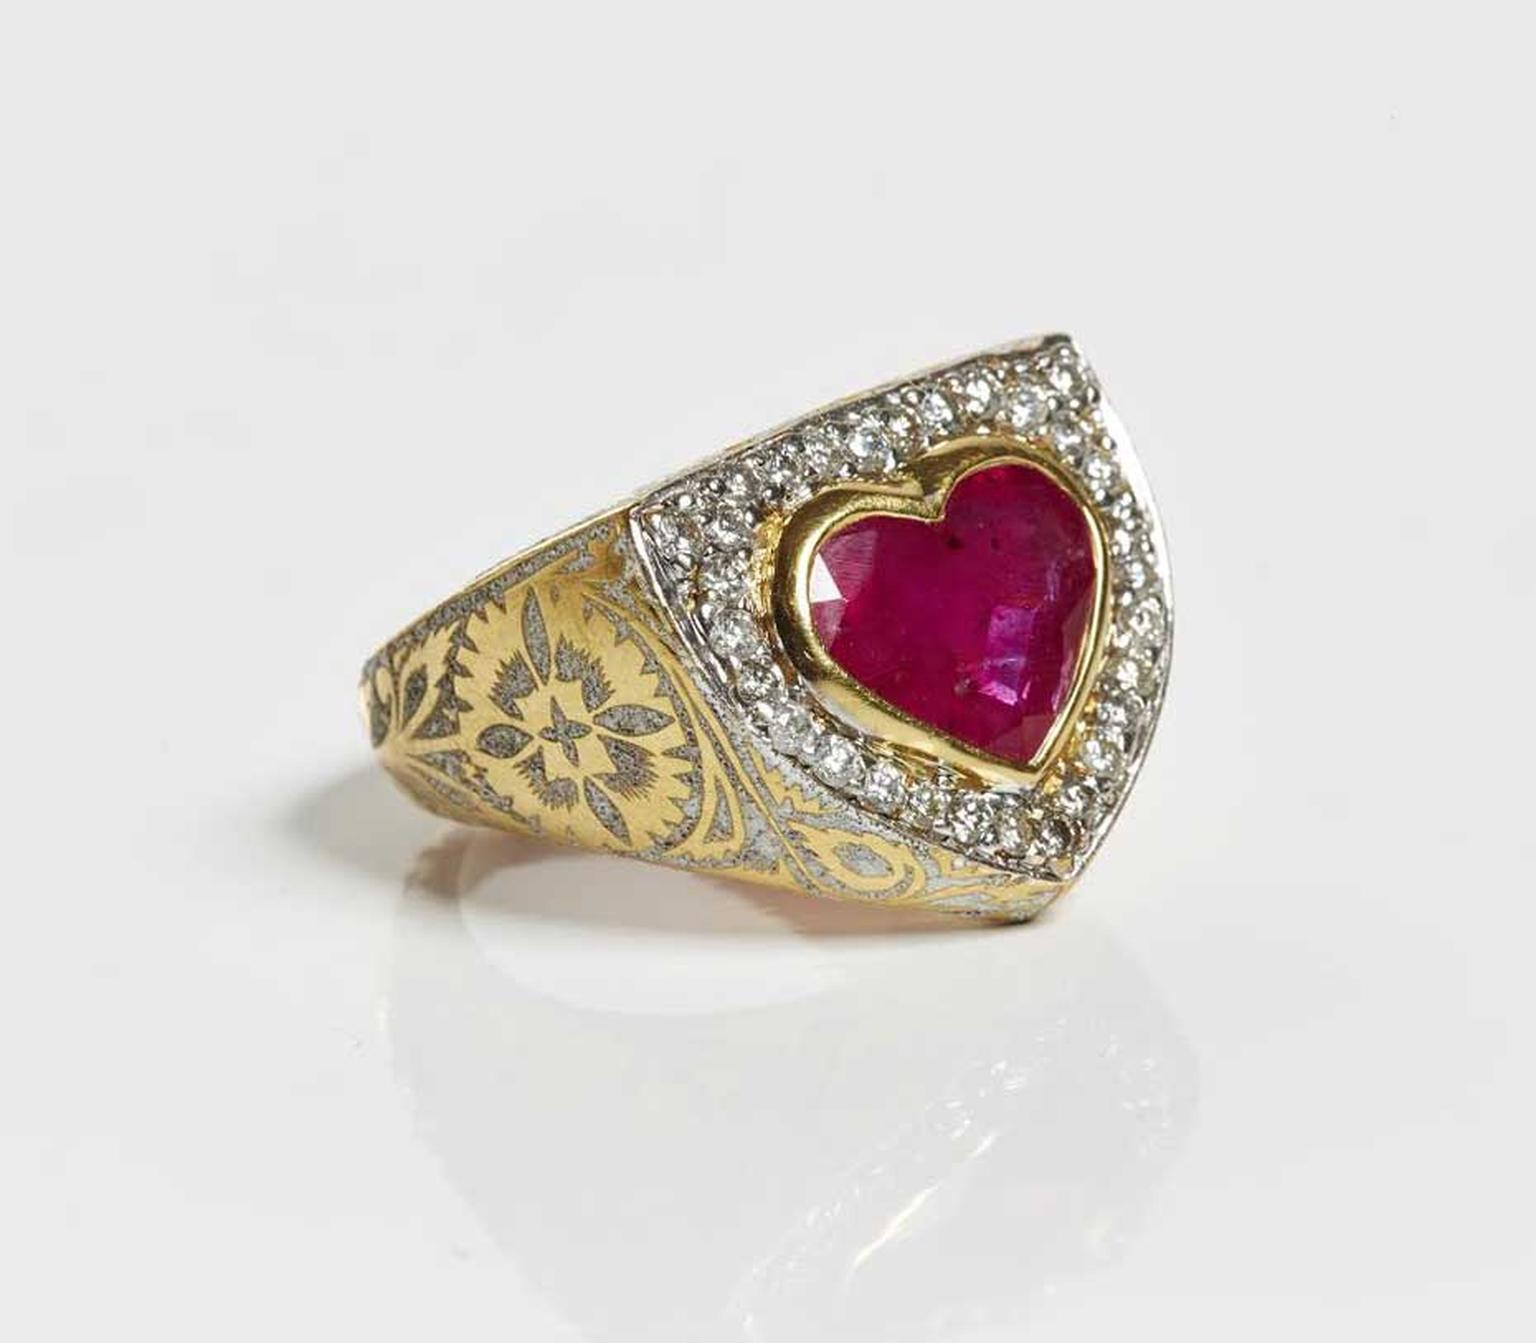 Jade Jagger ruby and diamond vintage-style engagement ring.